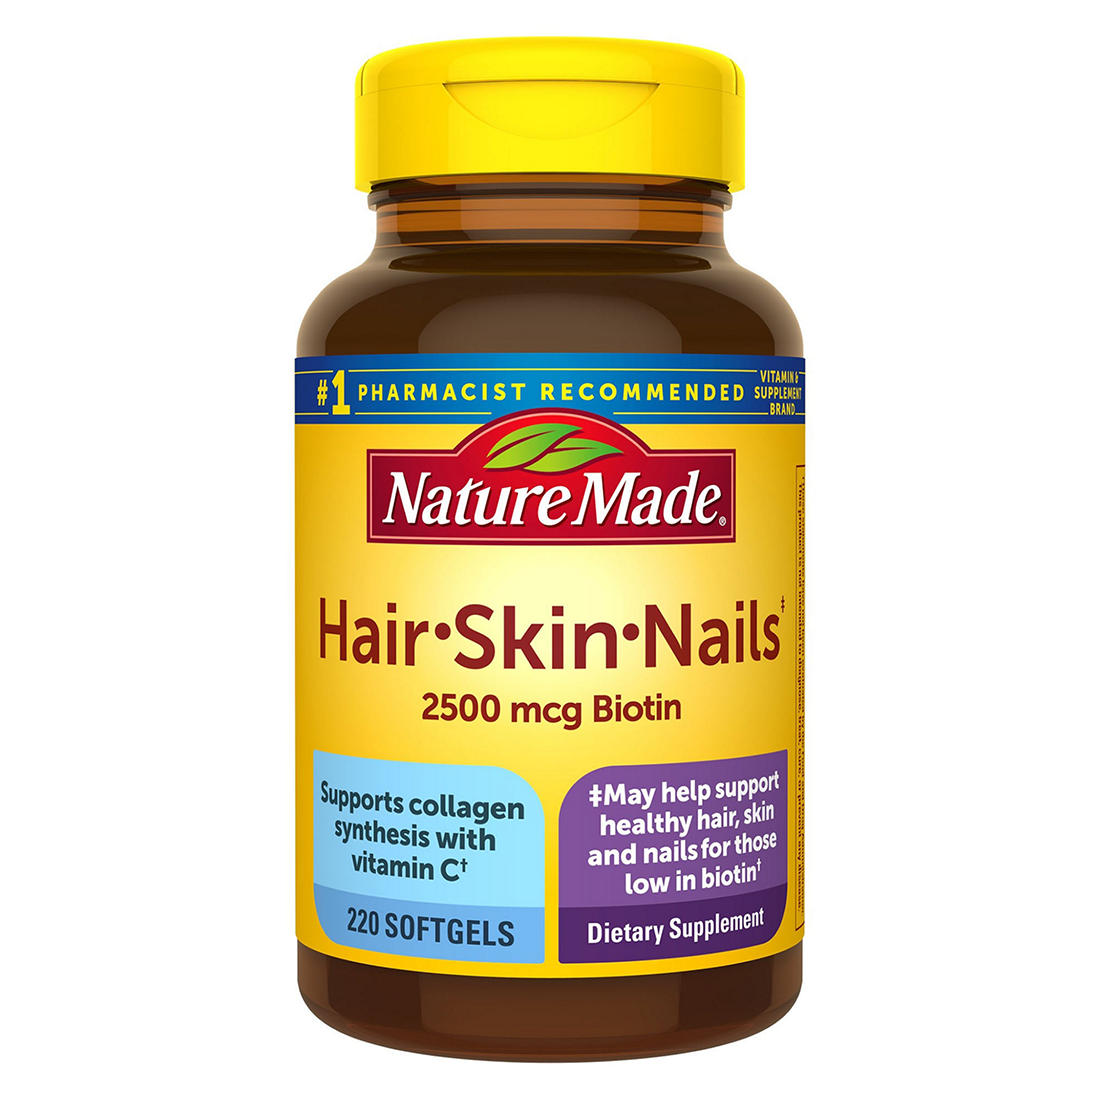 Nature Made Hair, Skin and Nails Supplement, 220 ct.